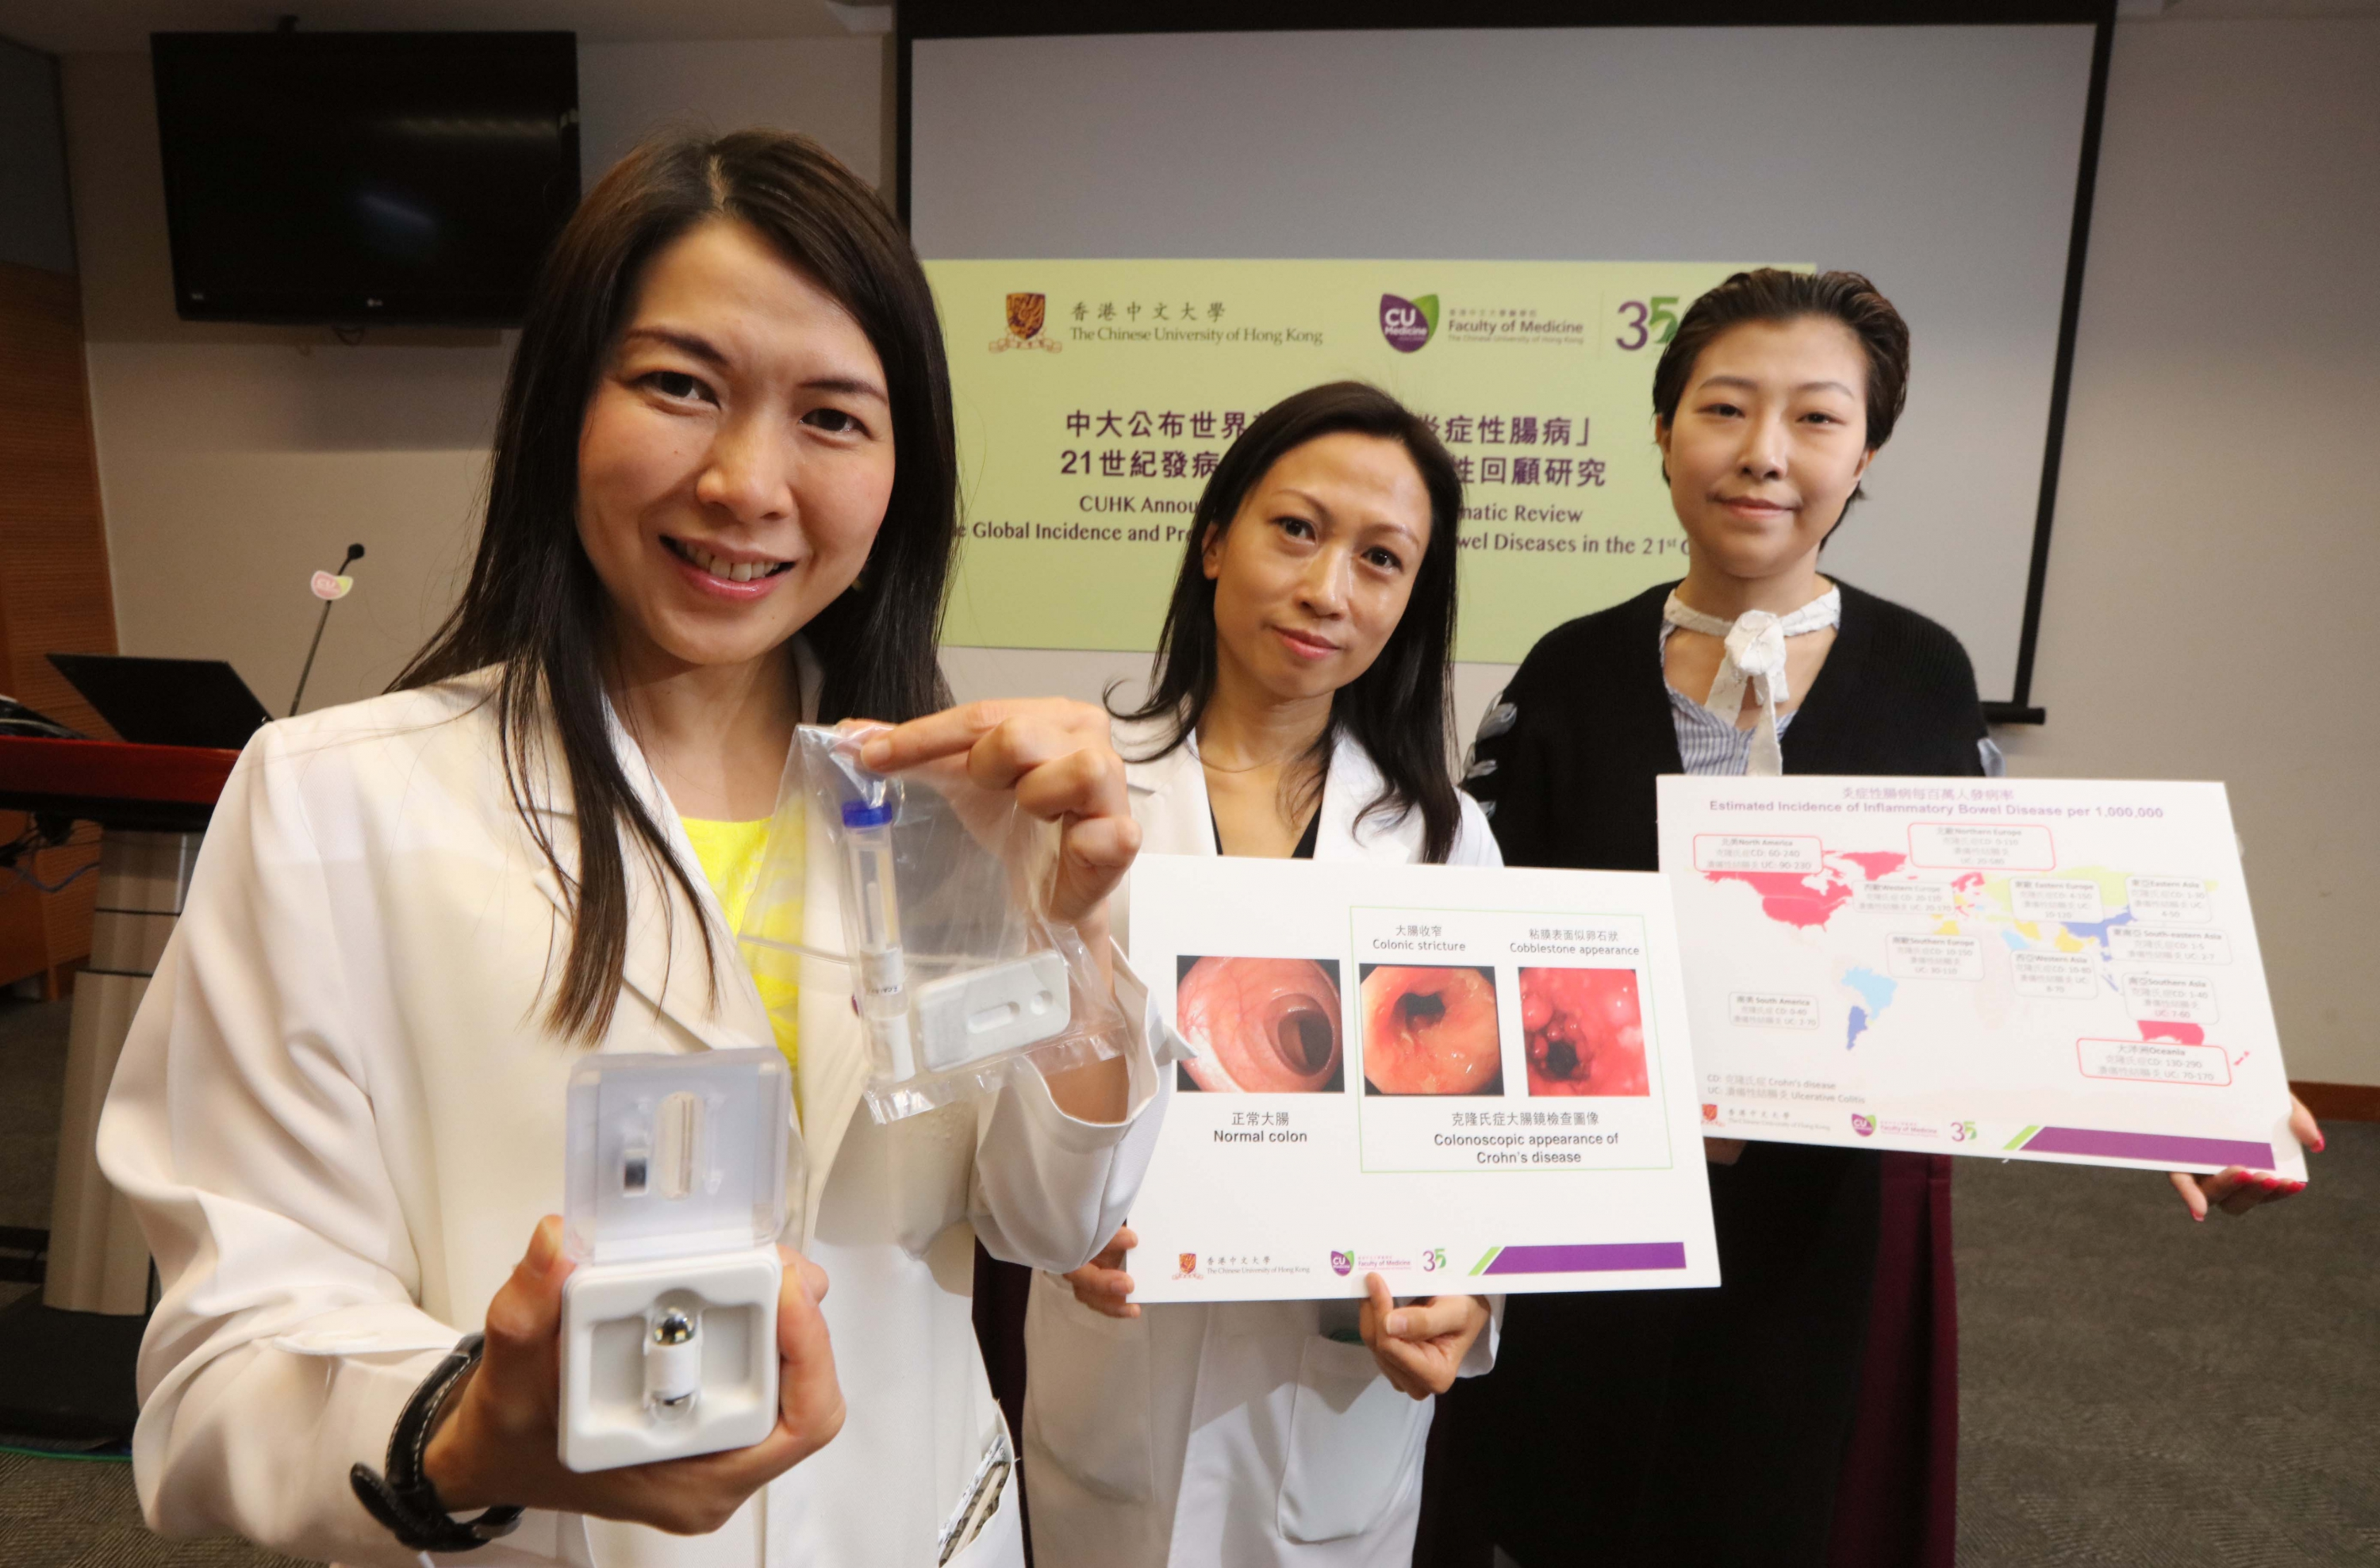 The Faculty of Medicine at CUHK announces the world's first systematic review of the global incidence and prevalence of Inflammatory Bowel Diseases (IBD) in the 21st century and found the incidence in Hong Kong having risen about 30 times in the past 30 years. Study results have just been published in the leading medical journal The Lancet. (From left) Prof. Siew NG and Chief Nursing Officer Ms Jessica CHING from the Department of Medicine and Therapeutics, Faculty of Medicine at CUHK, and the IBD patient Miss SUM.